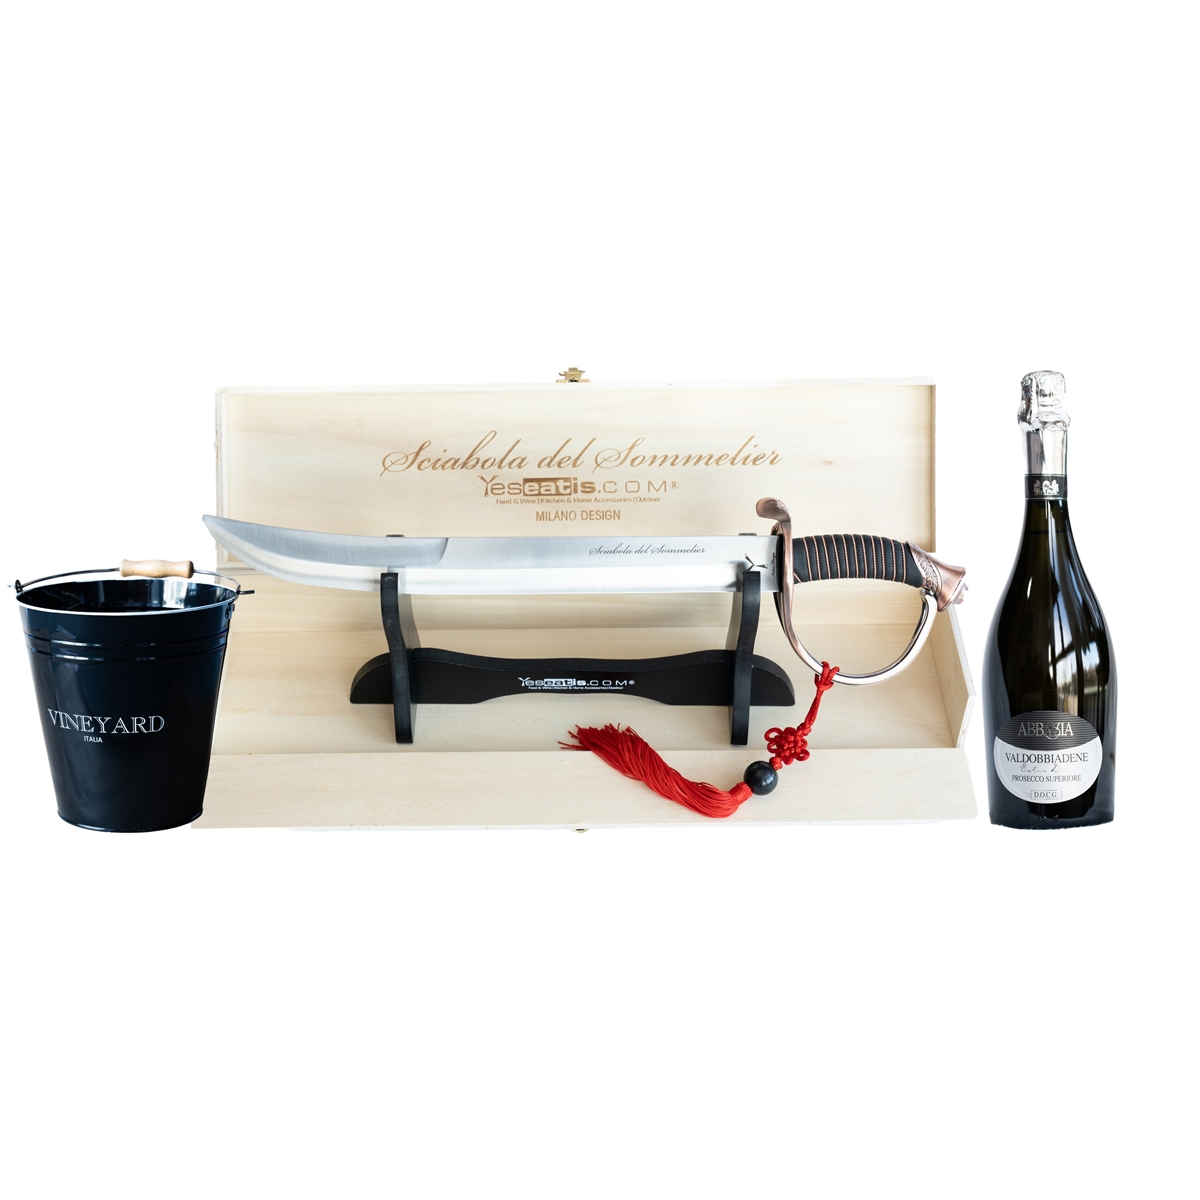 Sabrage Starter Kit with Sommelier Champagne Opener - Ice Bucket and Italian Prosecco wine